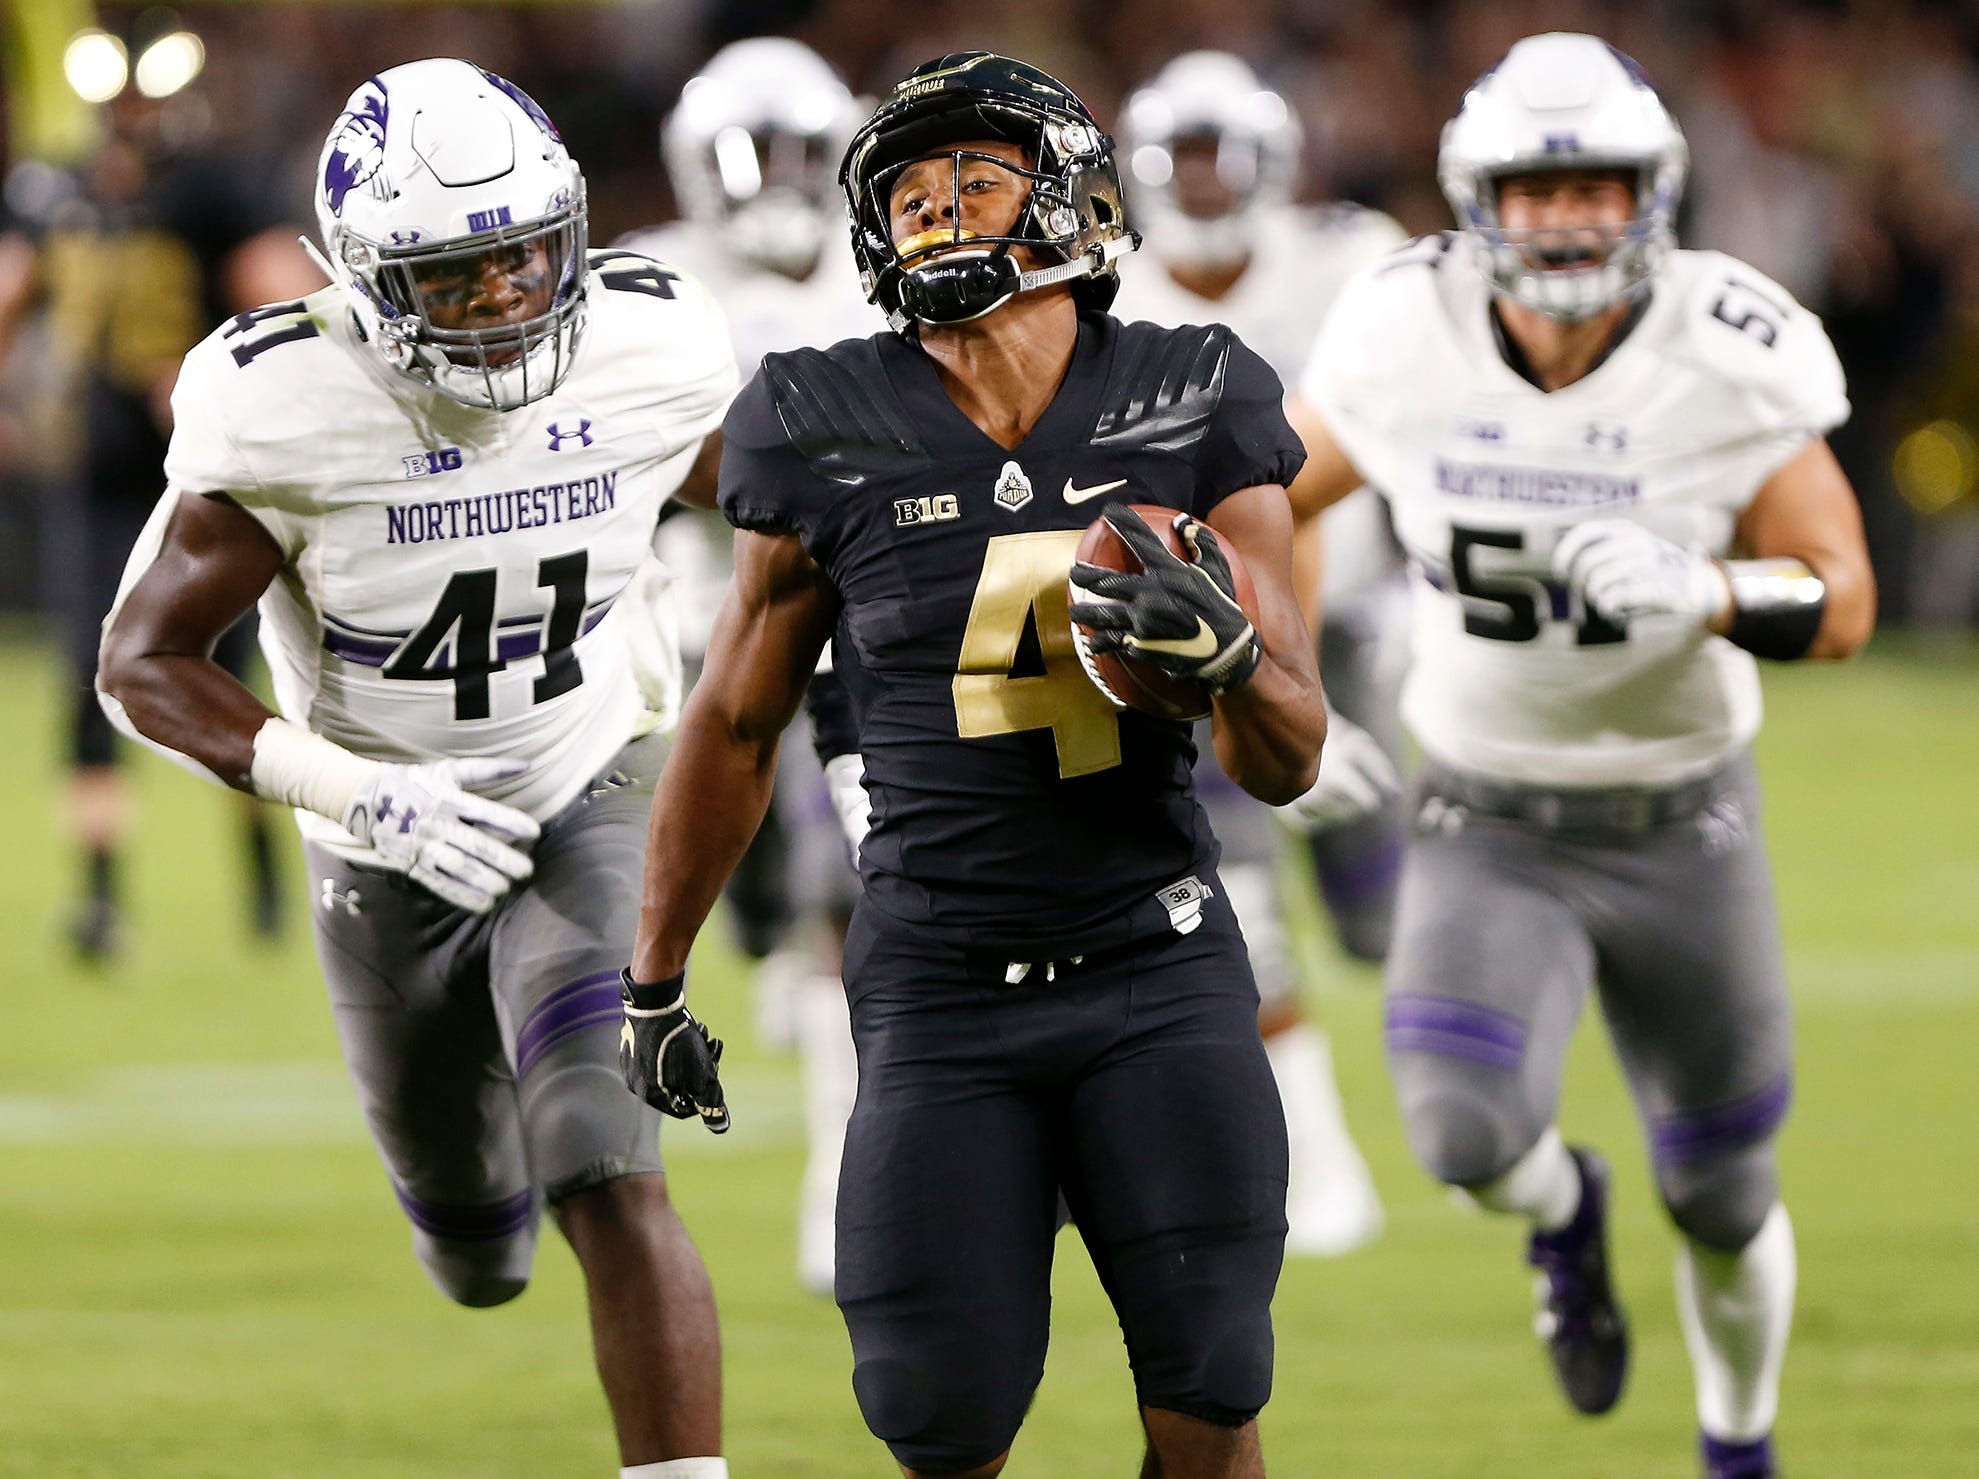 Rondale Moore of Purdue on a 76-yard touchdown run at 1:02 in the first quarter against Northwestern Thursday, August 30, 2018, in West Lafayette. Moore's score tied the game at 14-14.